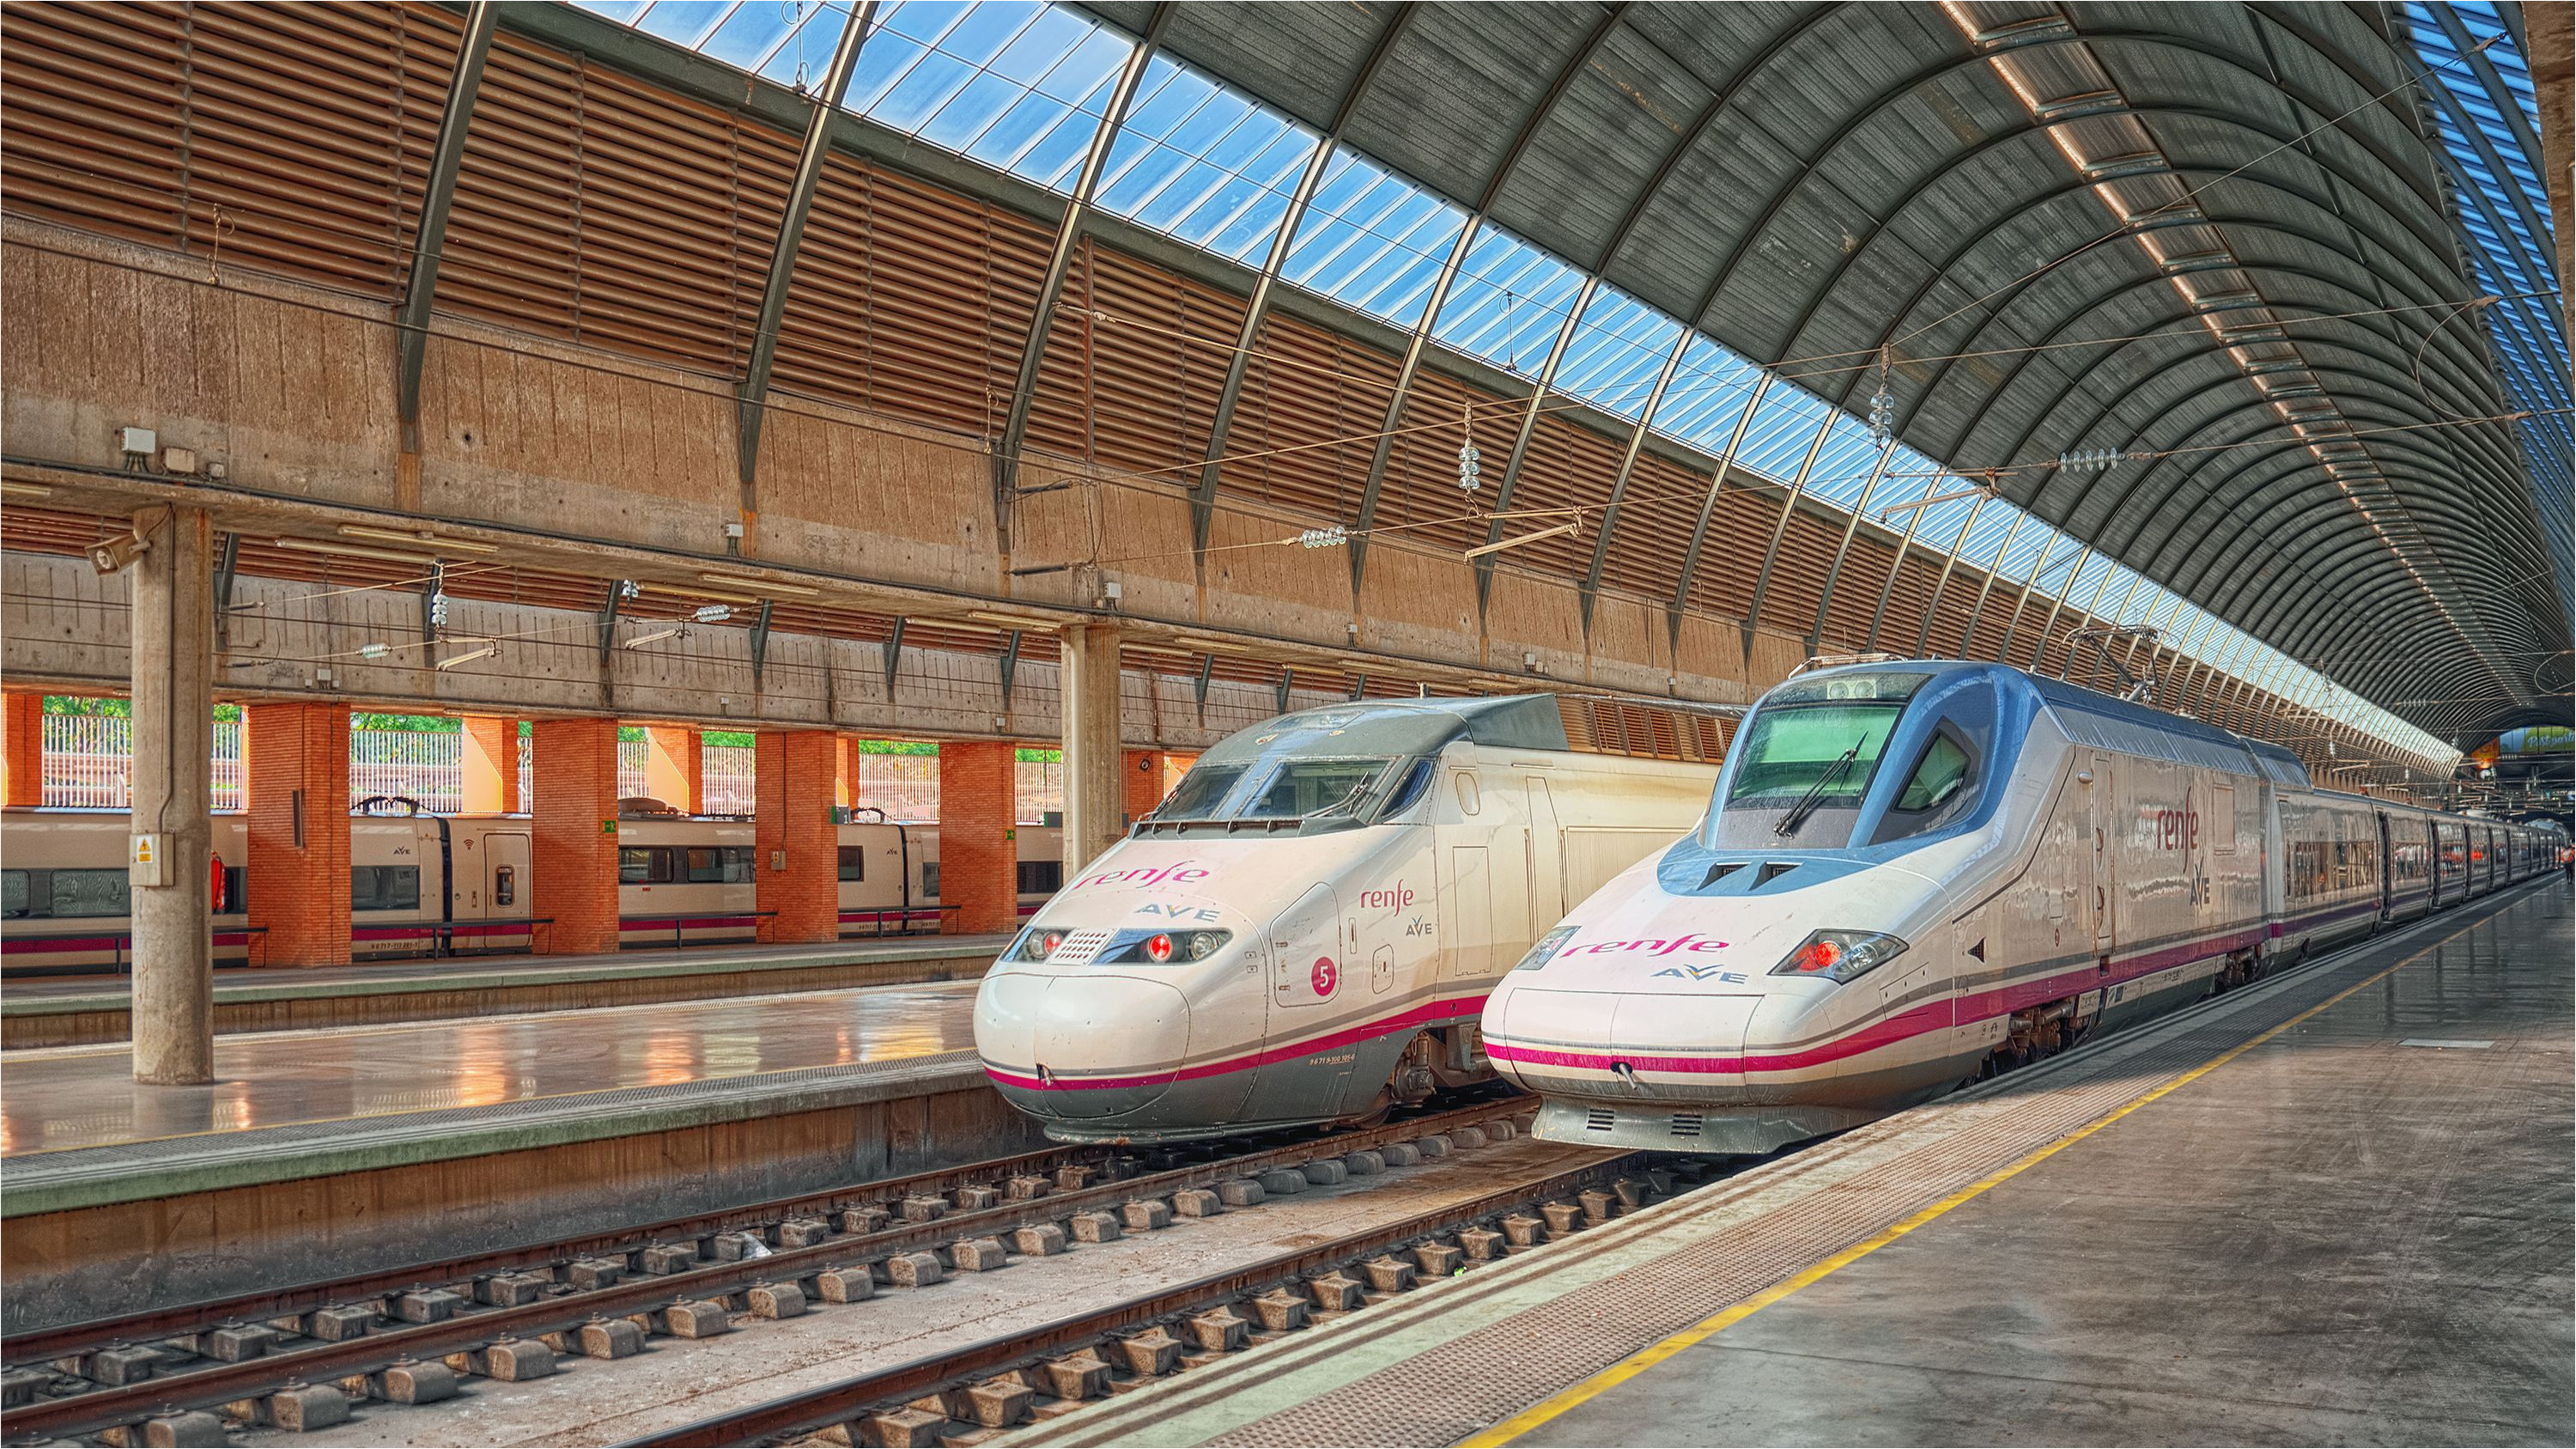 bus and train stations in seville spain